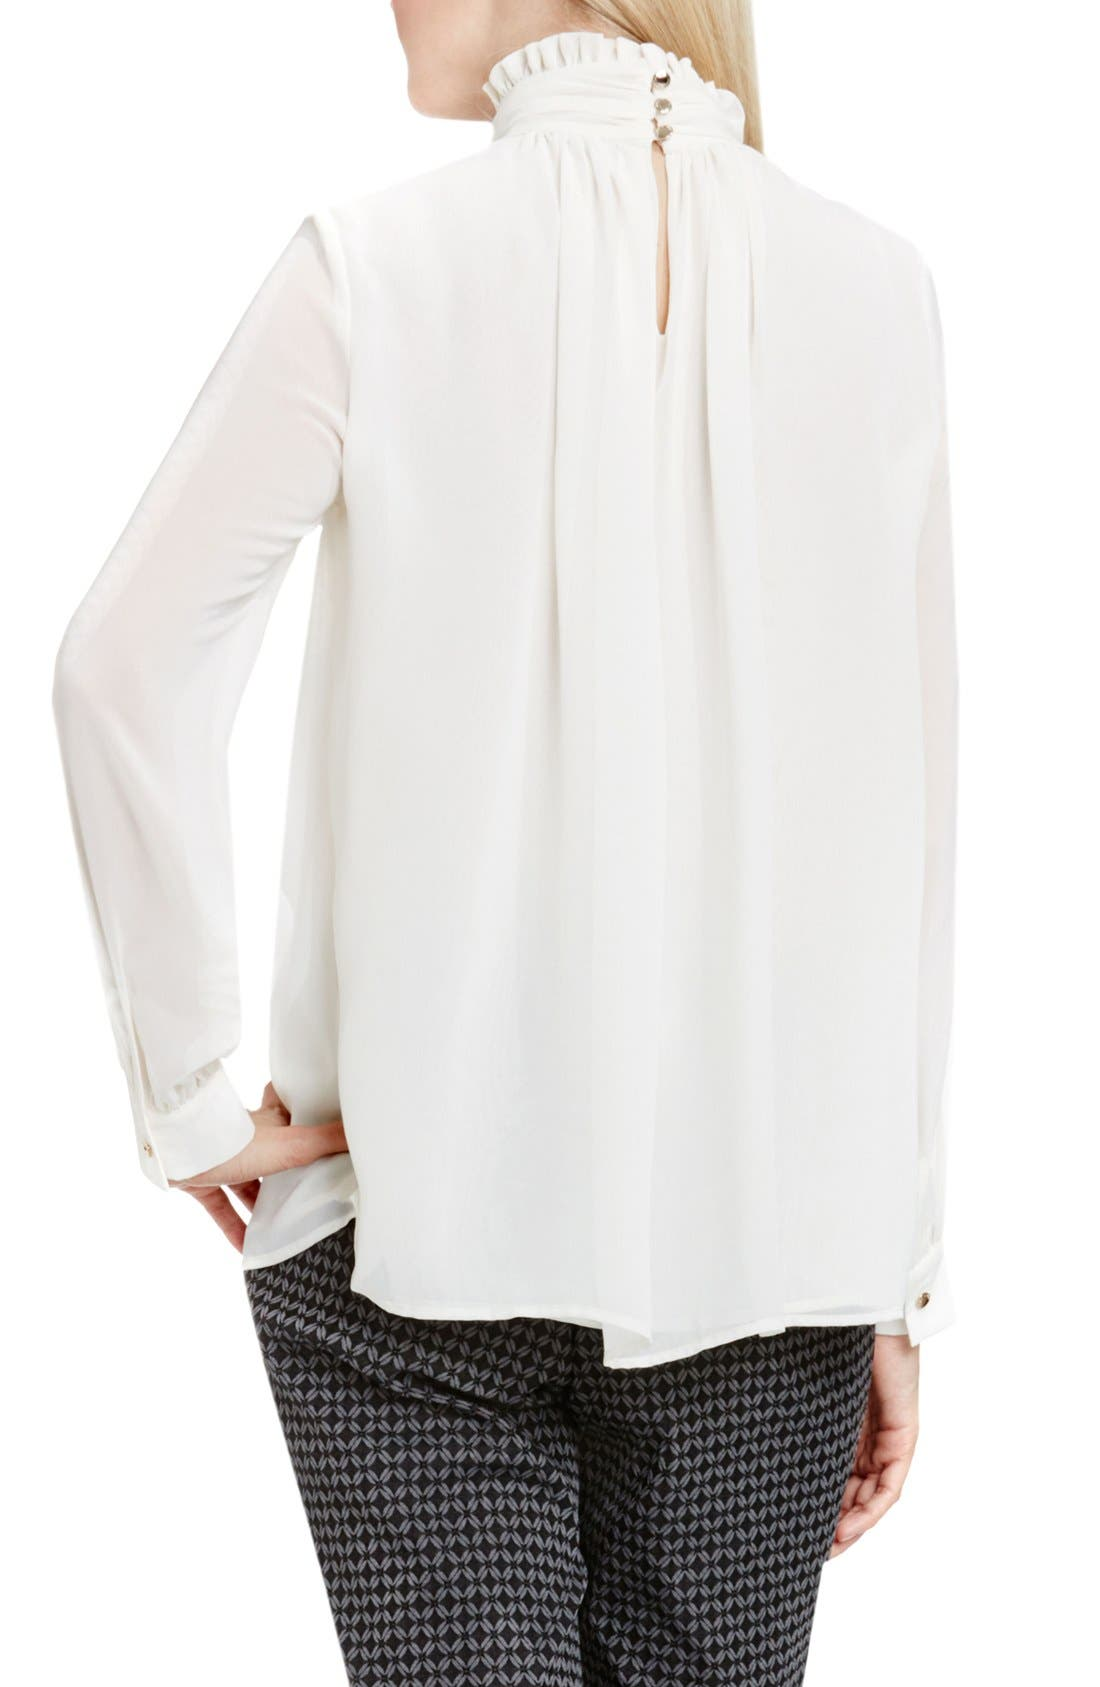 Alternate Image 3  - Vince Camuto Ruffle Collar Blouse (Regular & Petite)